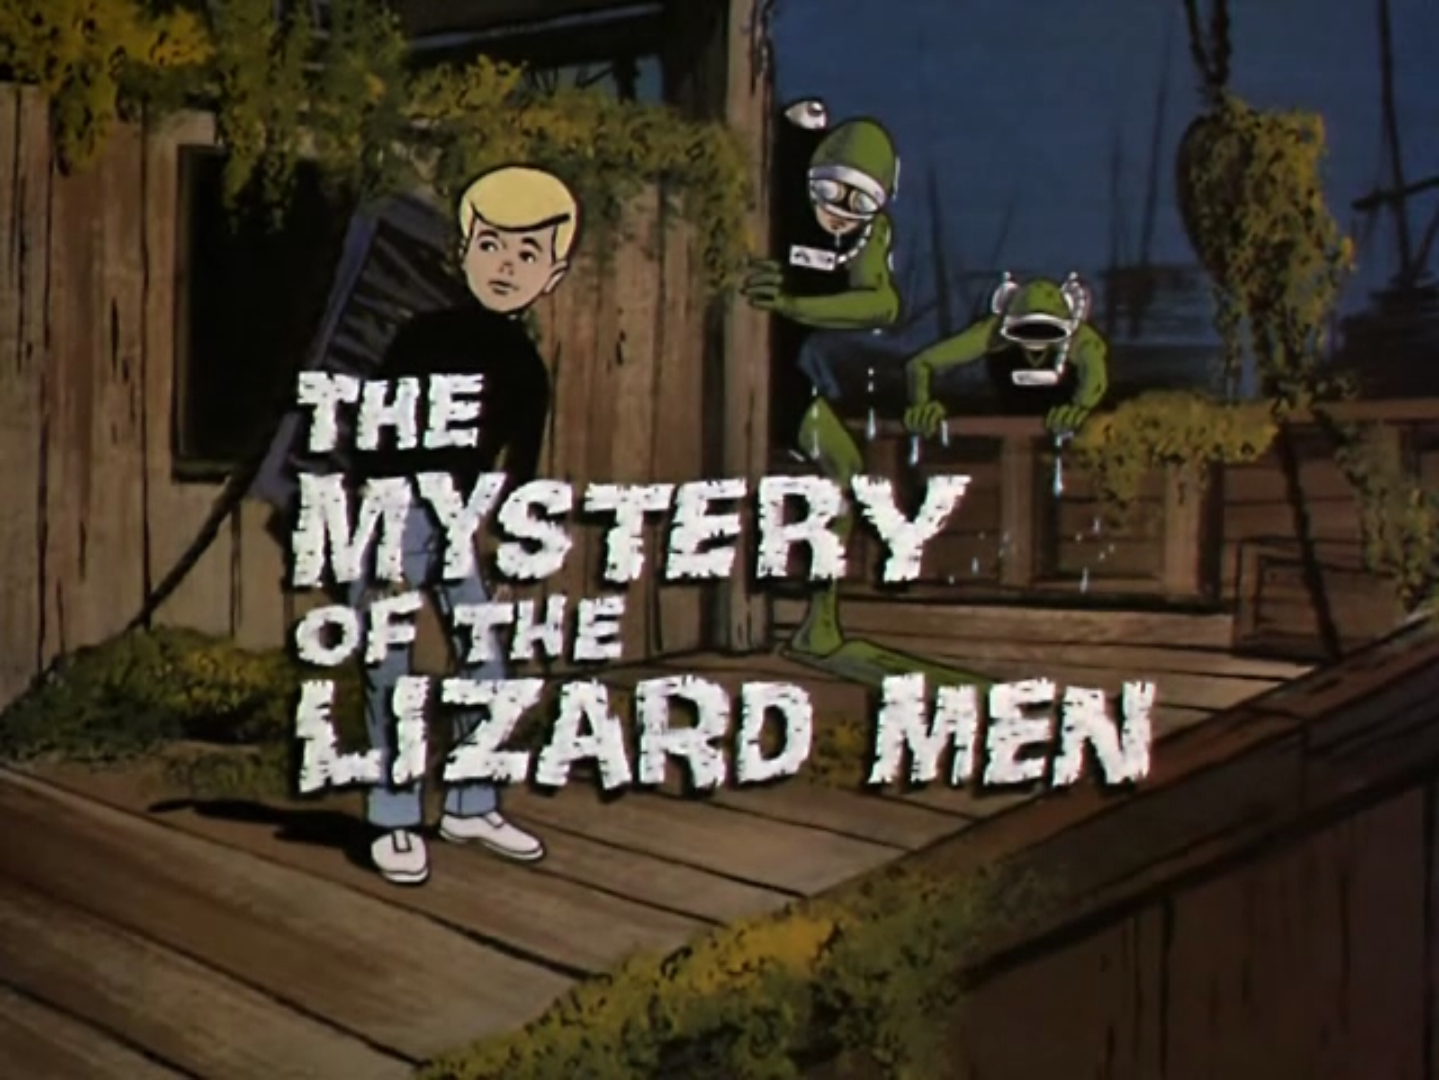 lizard men and Jonny Quest